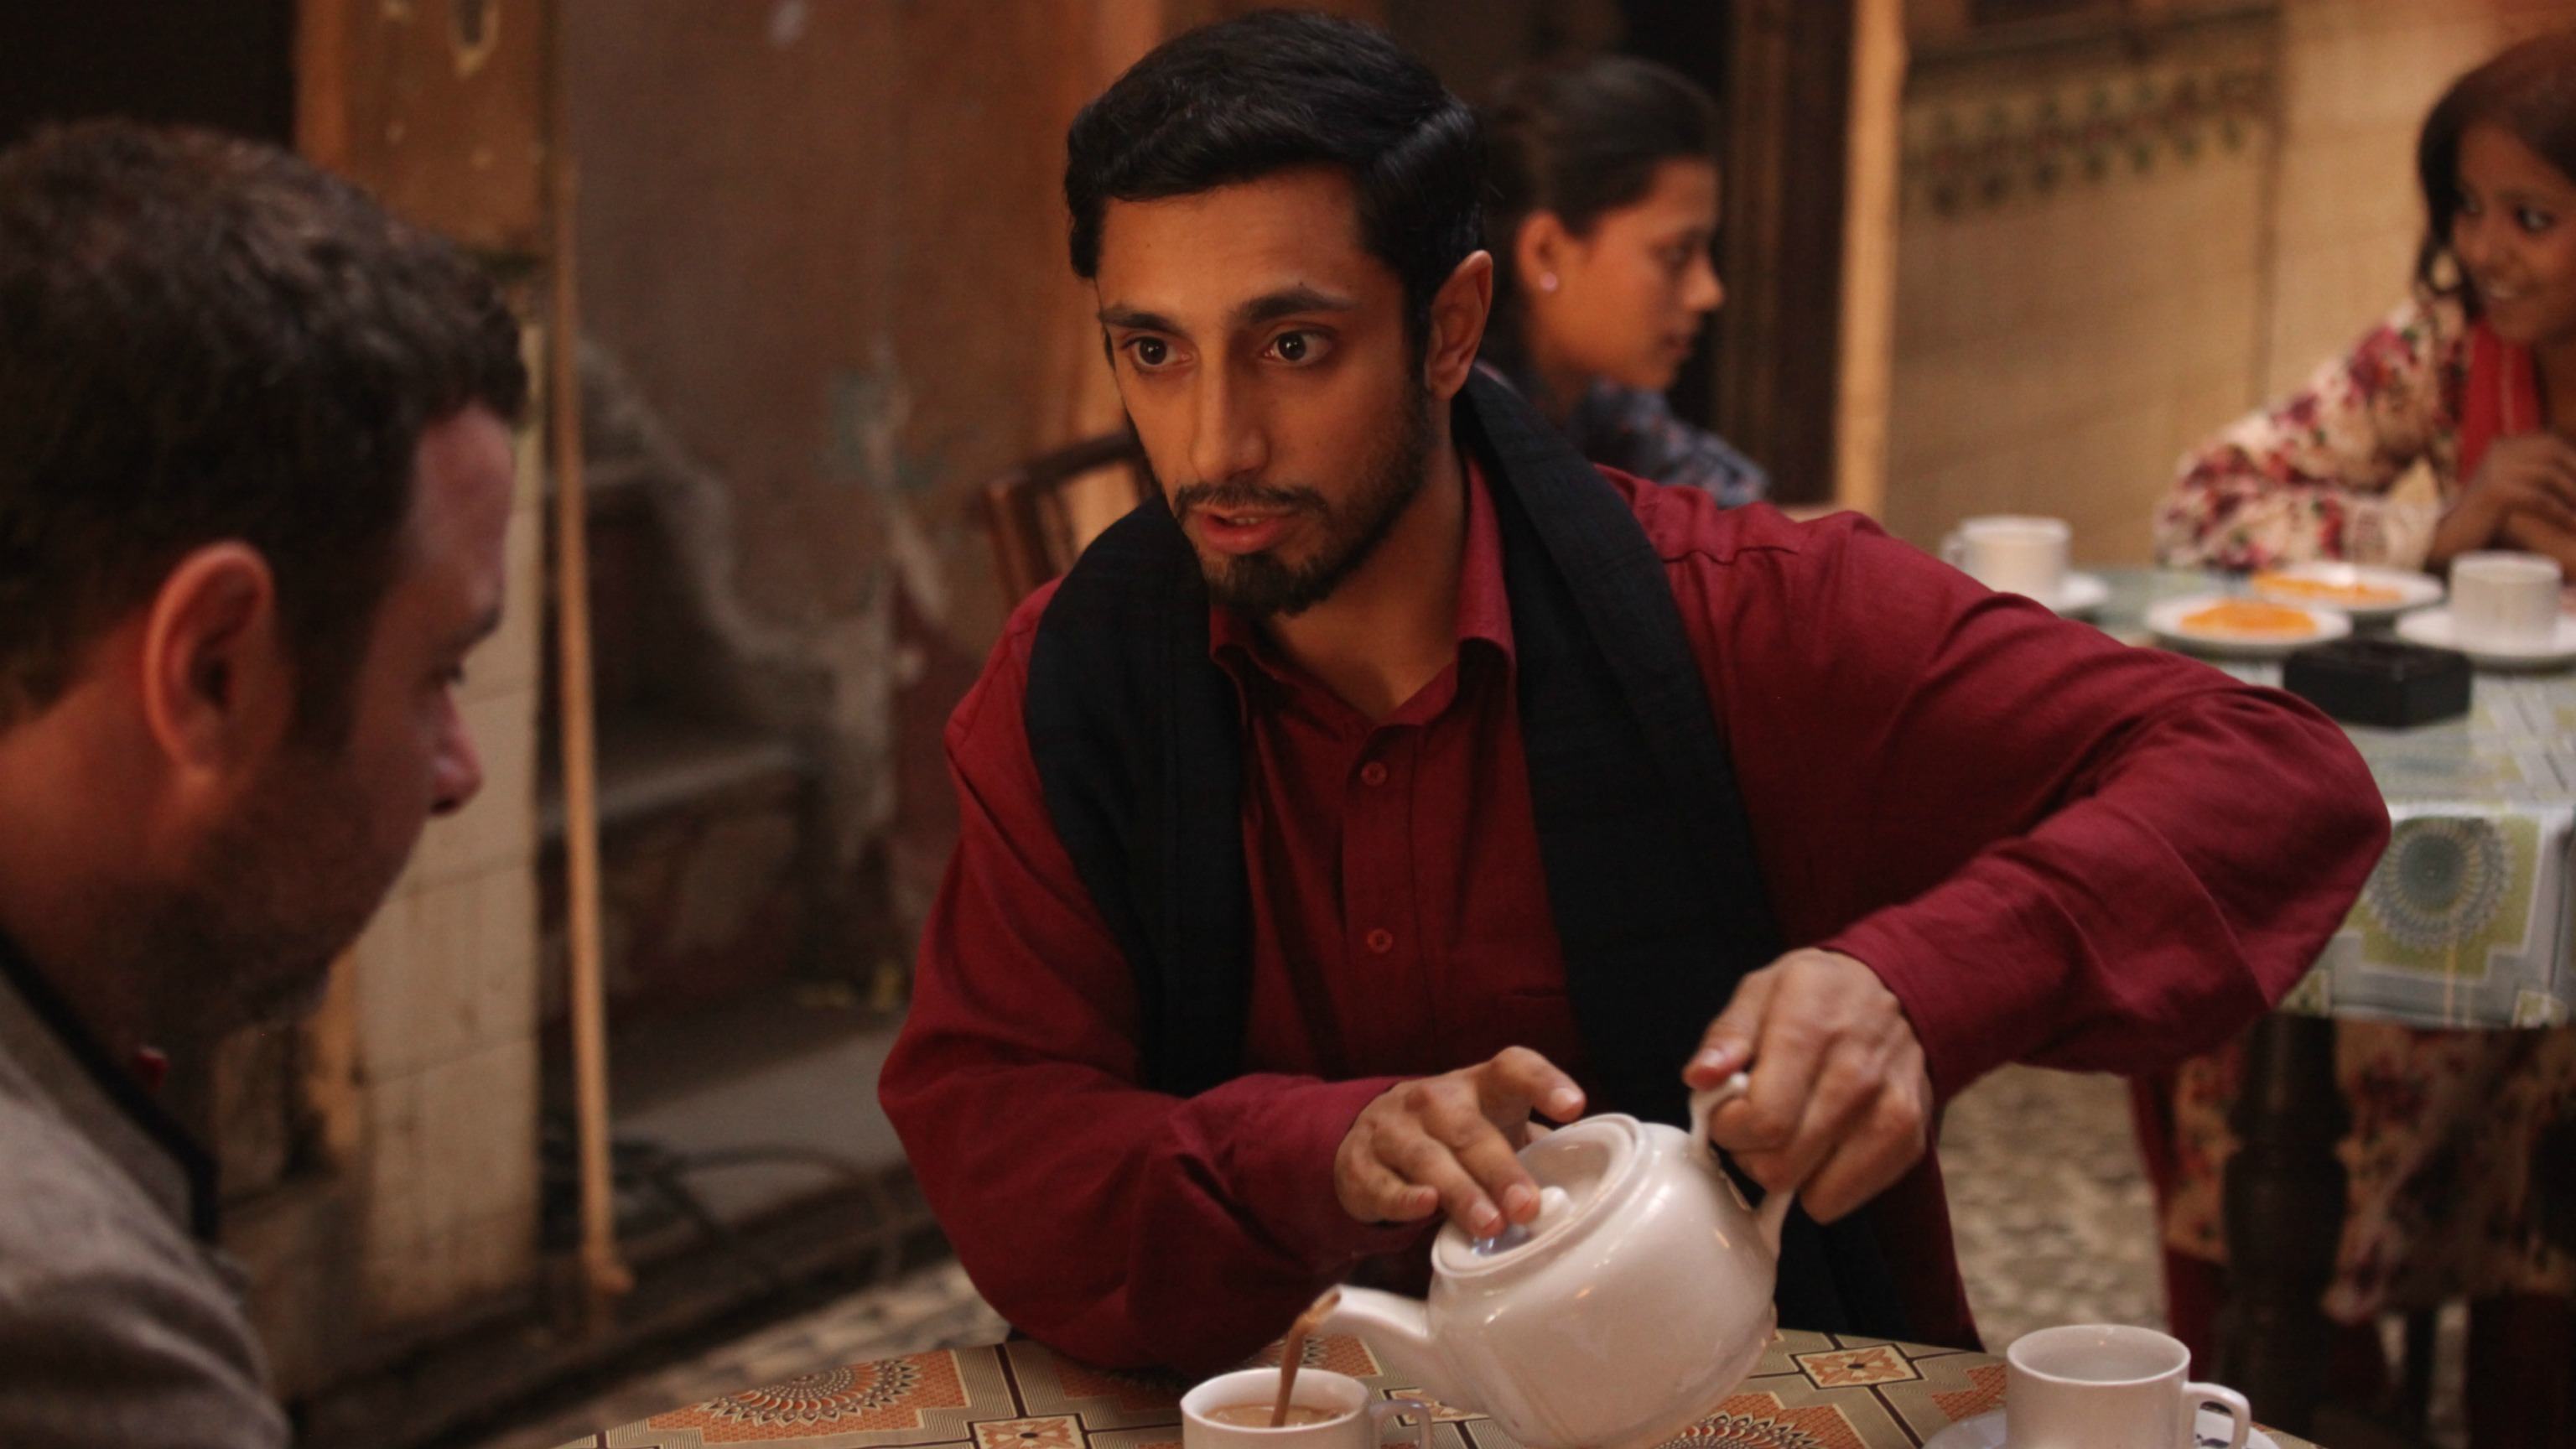 reluctant fundsamentalist review The reluctant fundamentalist tells the story of a young new yorker whose life is upturned by 9/11 in ways he the reluctant fundamentalist is rich with such small but resonant moments, and it.